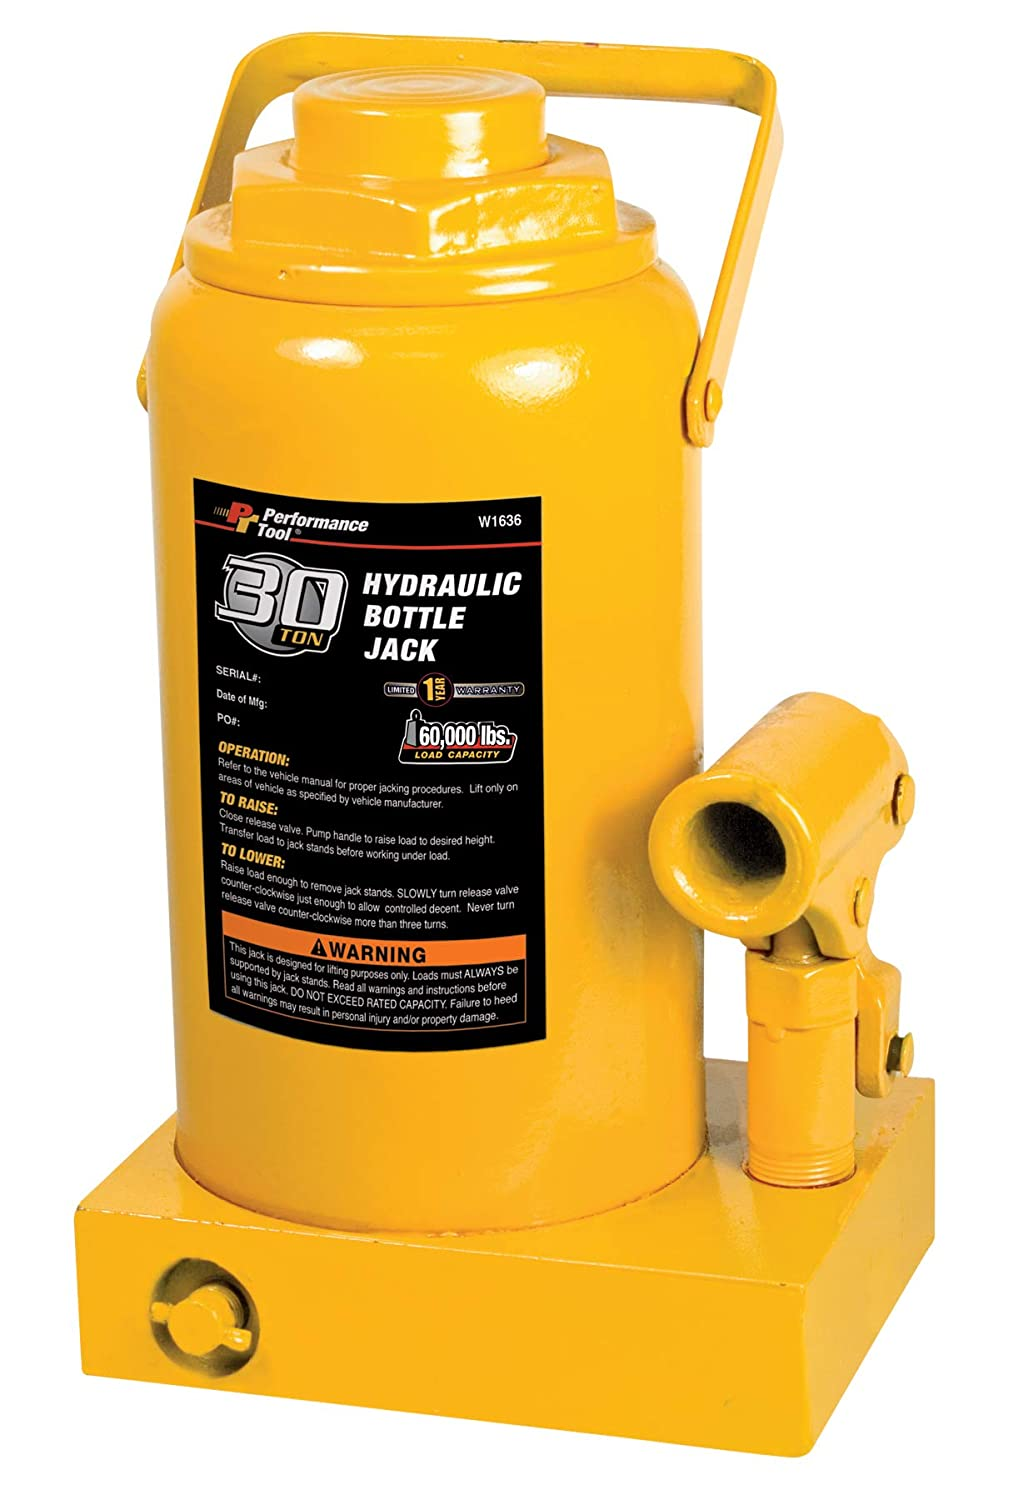 Performance Tool W1637 50 Ton (100, 000 lbs.) Heavy Duty Hydraulic Bottle Jack Wilmar Corporation